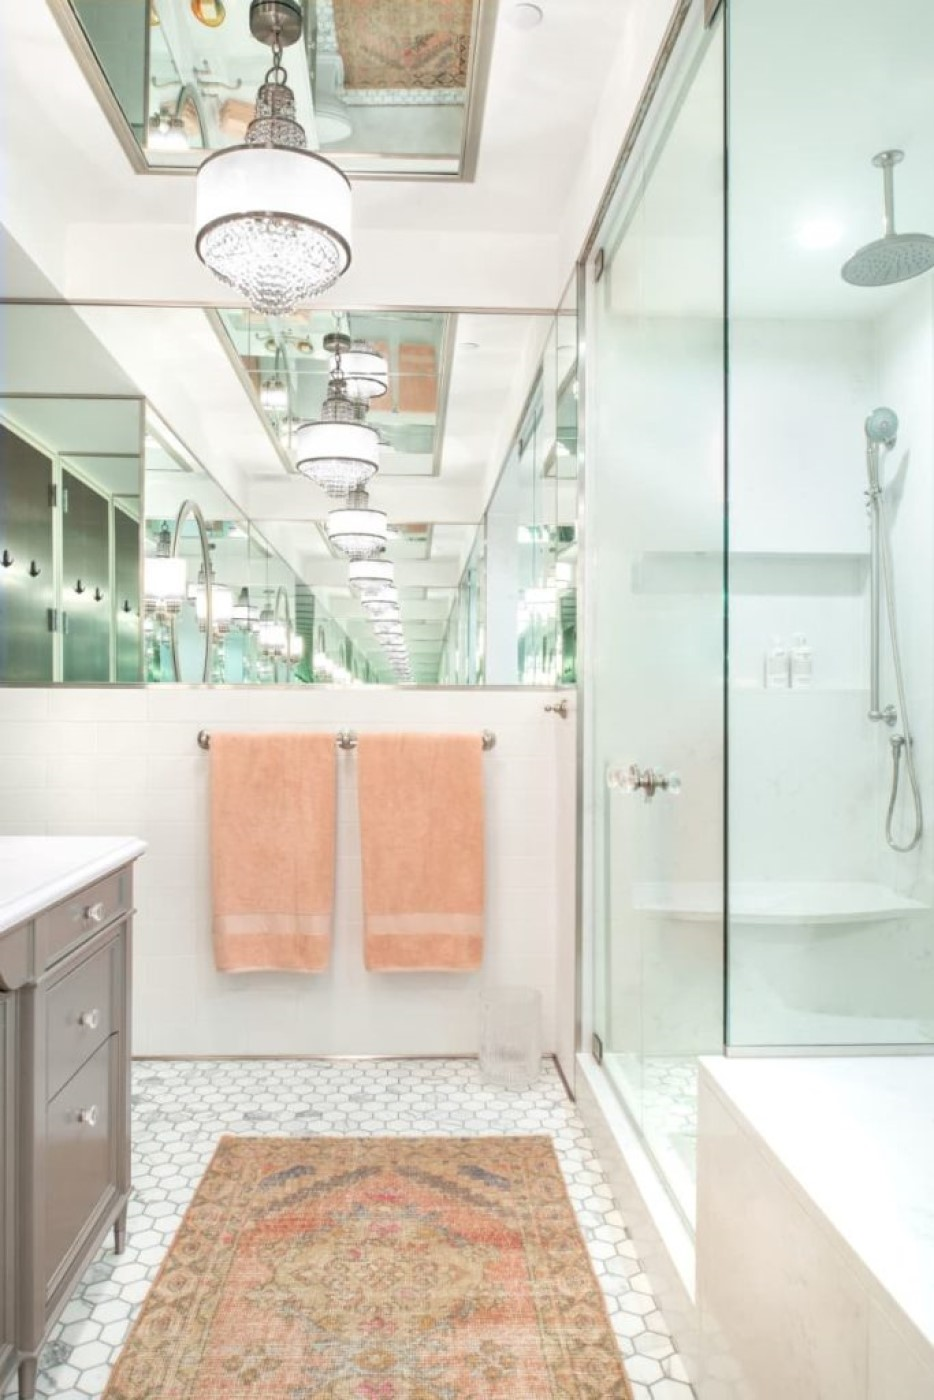 Because of the multitude and placement of the mirrors, you get an infinity mirror effect, reflecting the bathroom's luxurious details again and again and again.